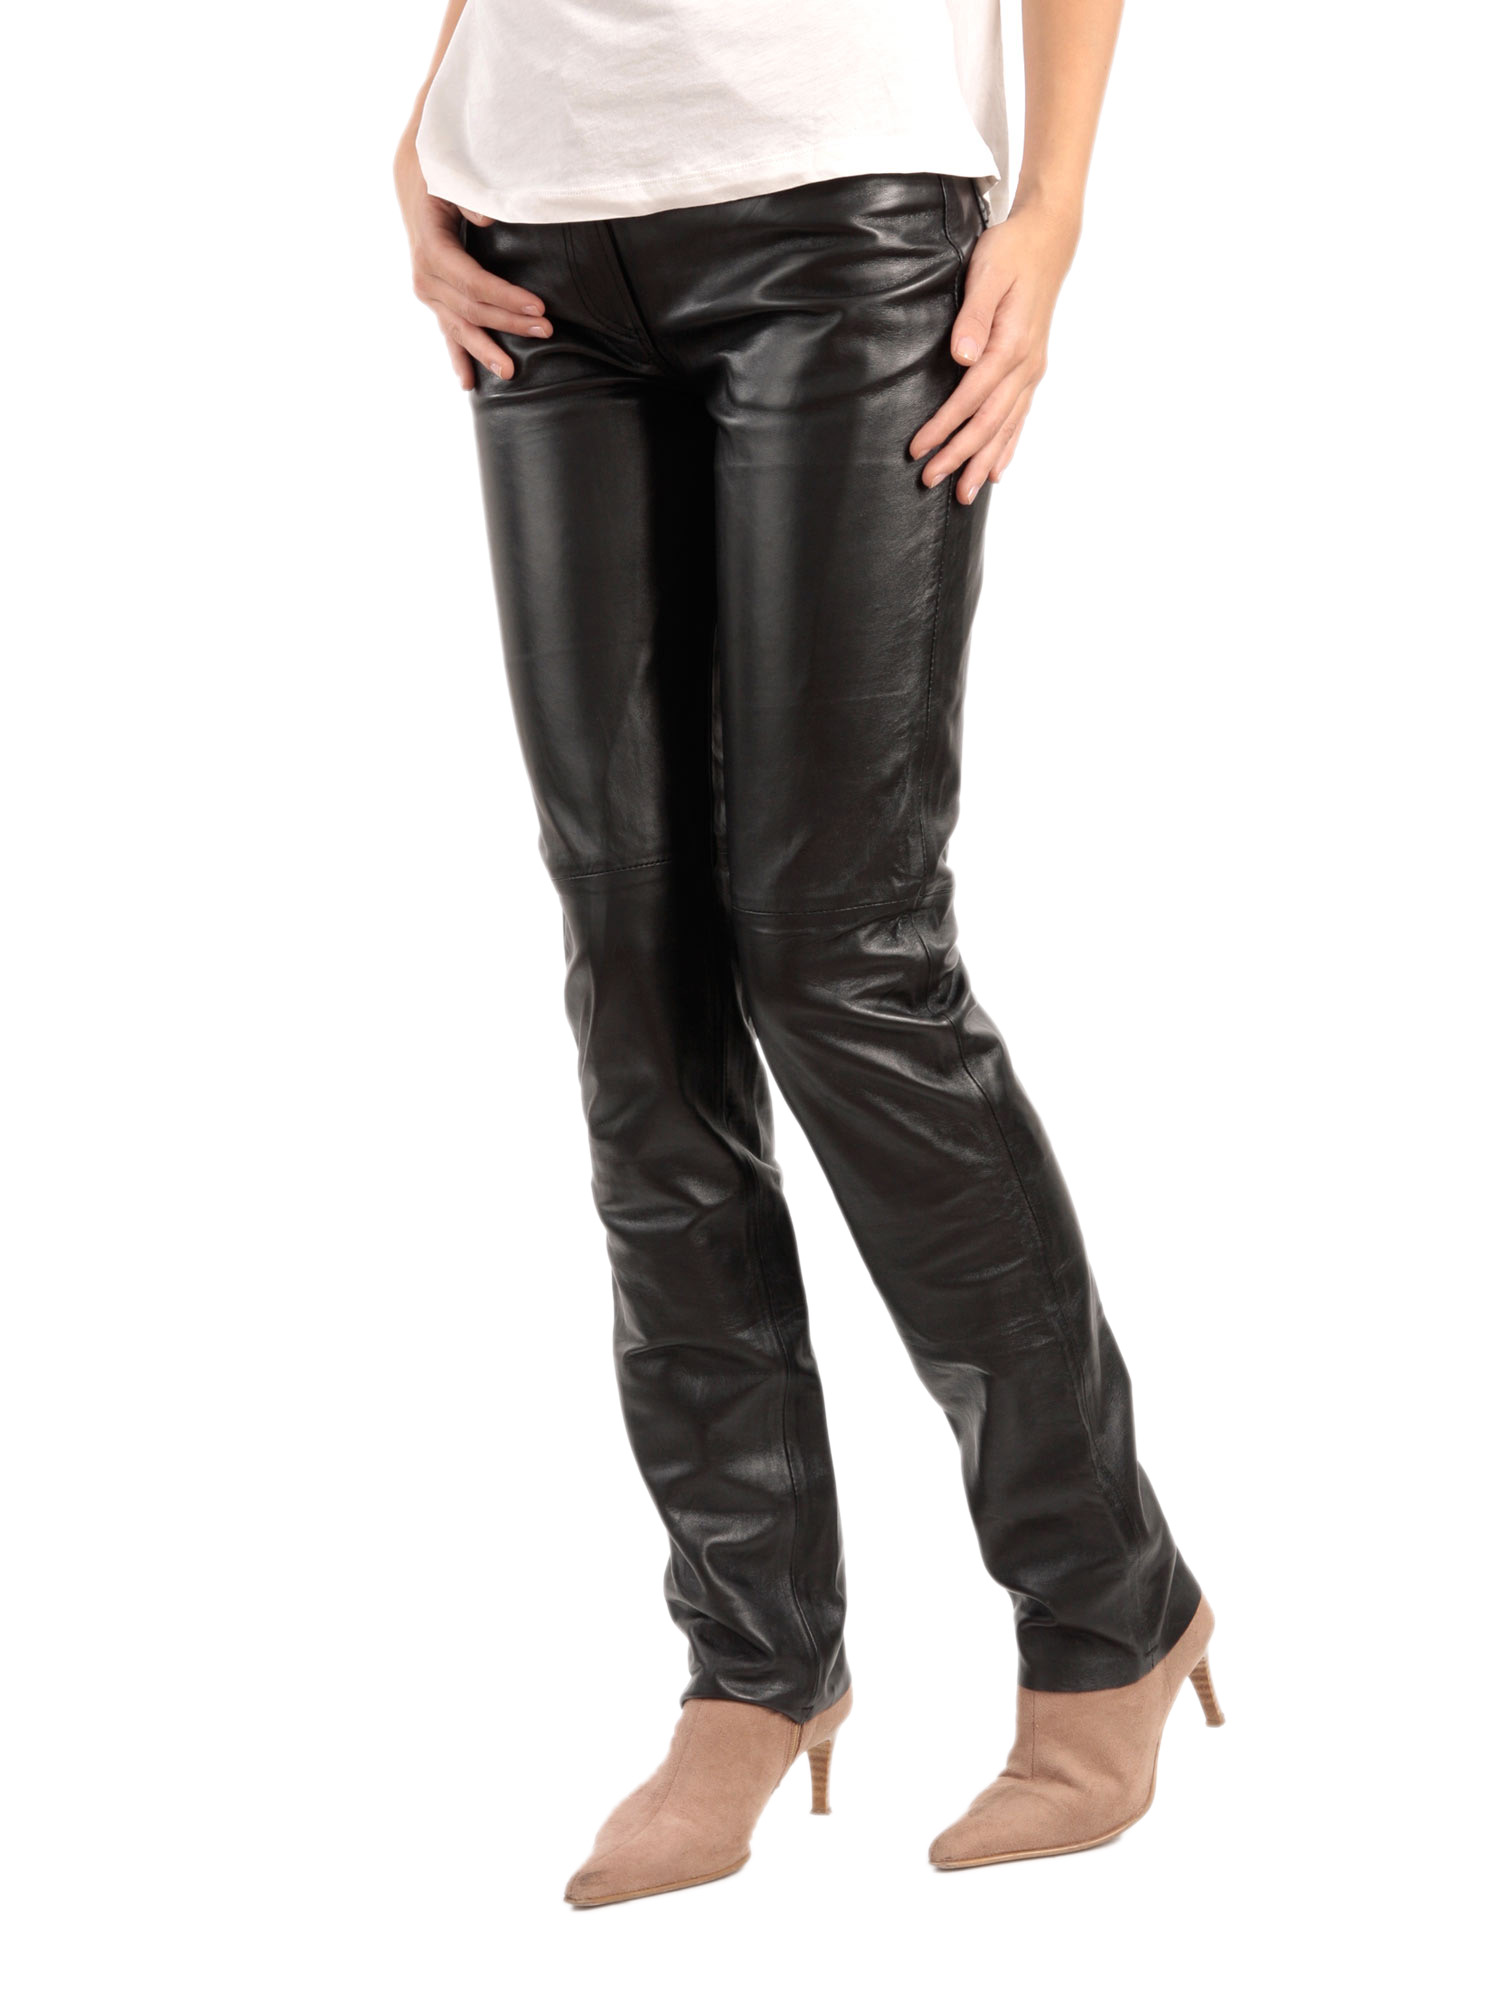 Lastest Black Sexy Womens Skinny Faux Leather High Waist Trousers Tights